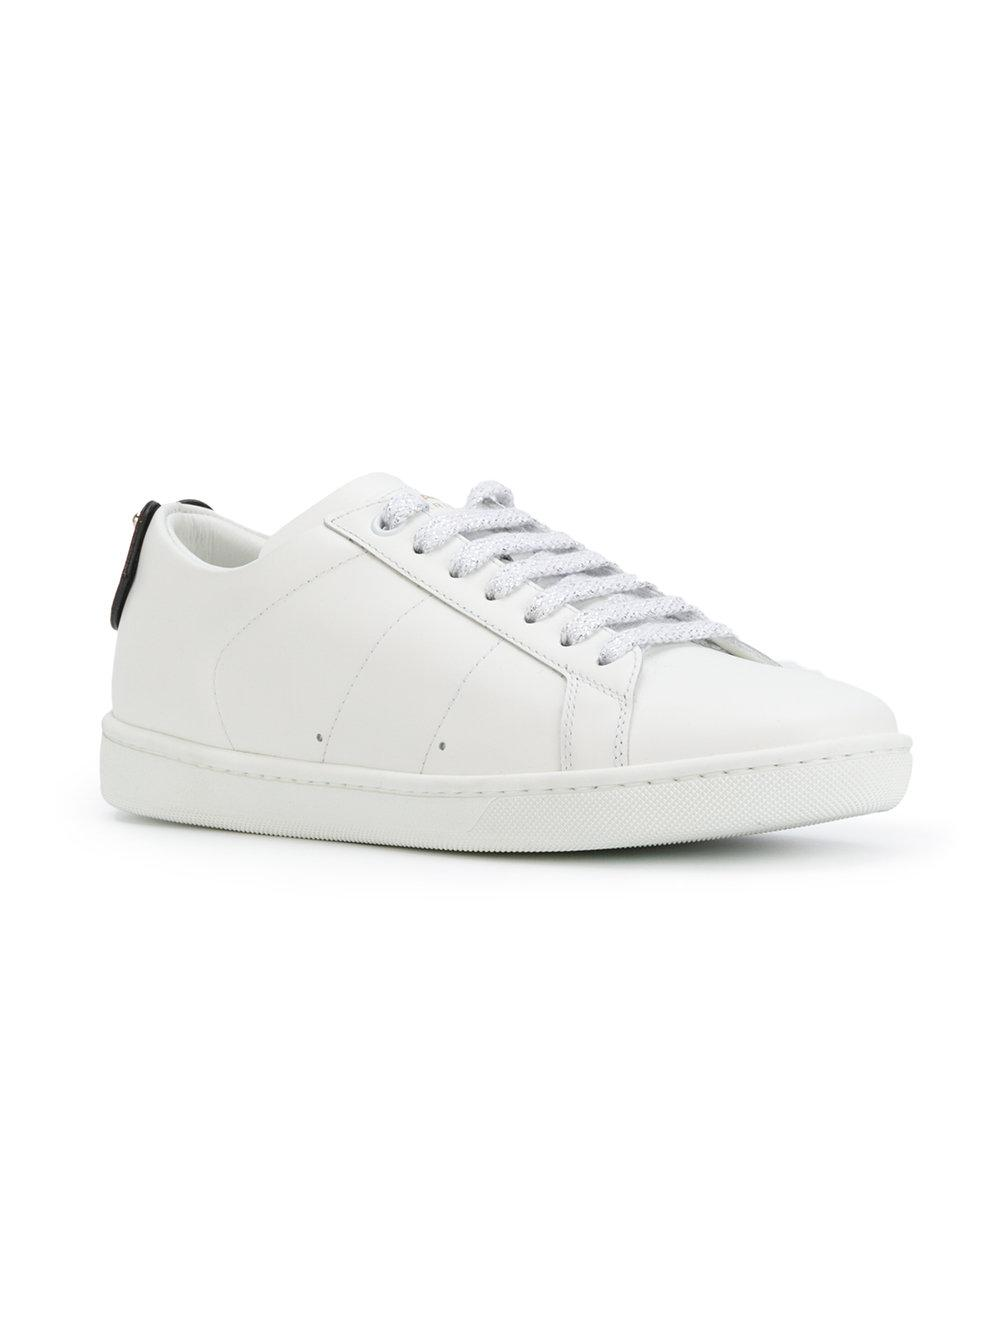 61031b84f32e Saint Laurent Court Classic Lips Sneakers in White - Save 35% - Lyst